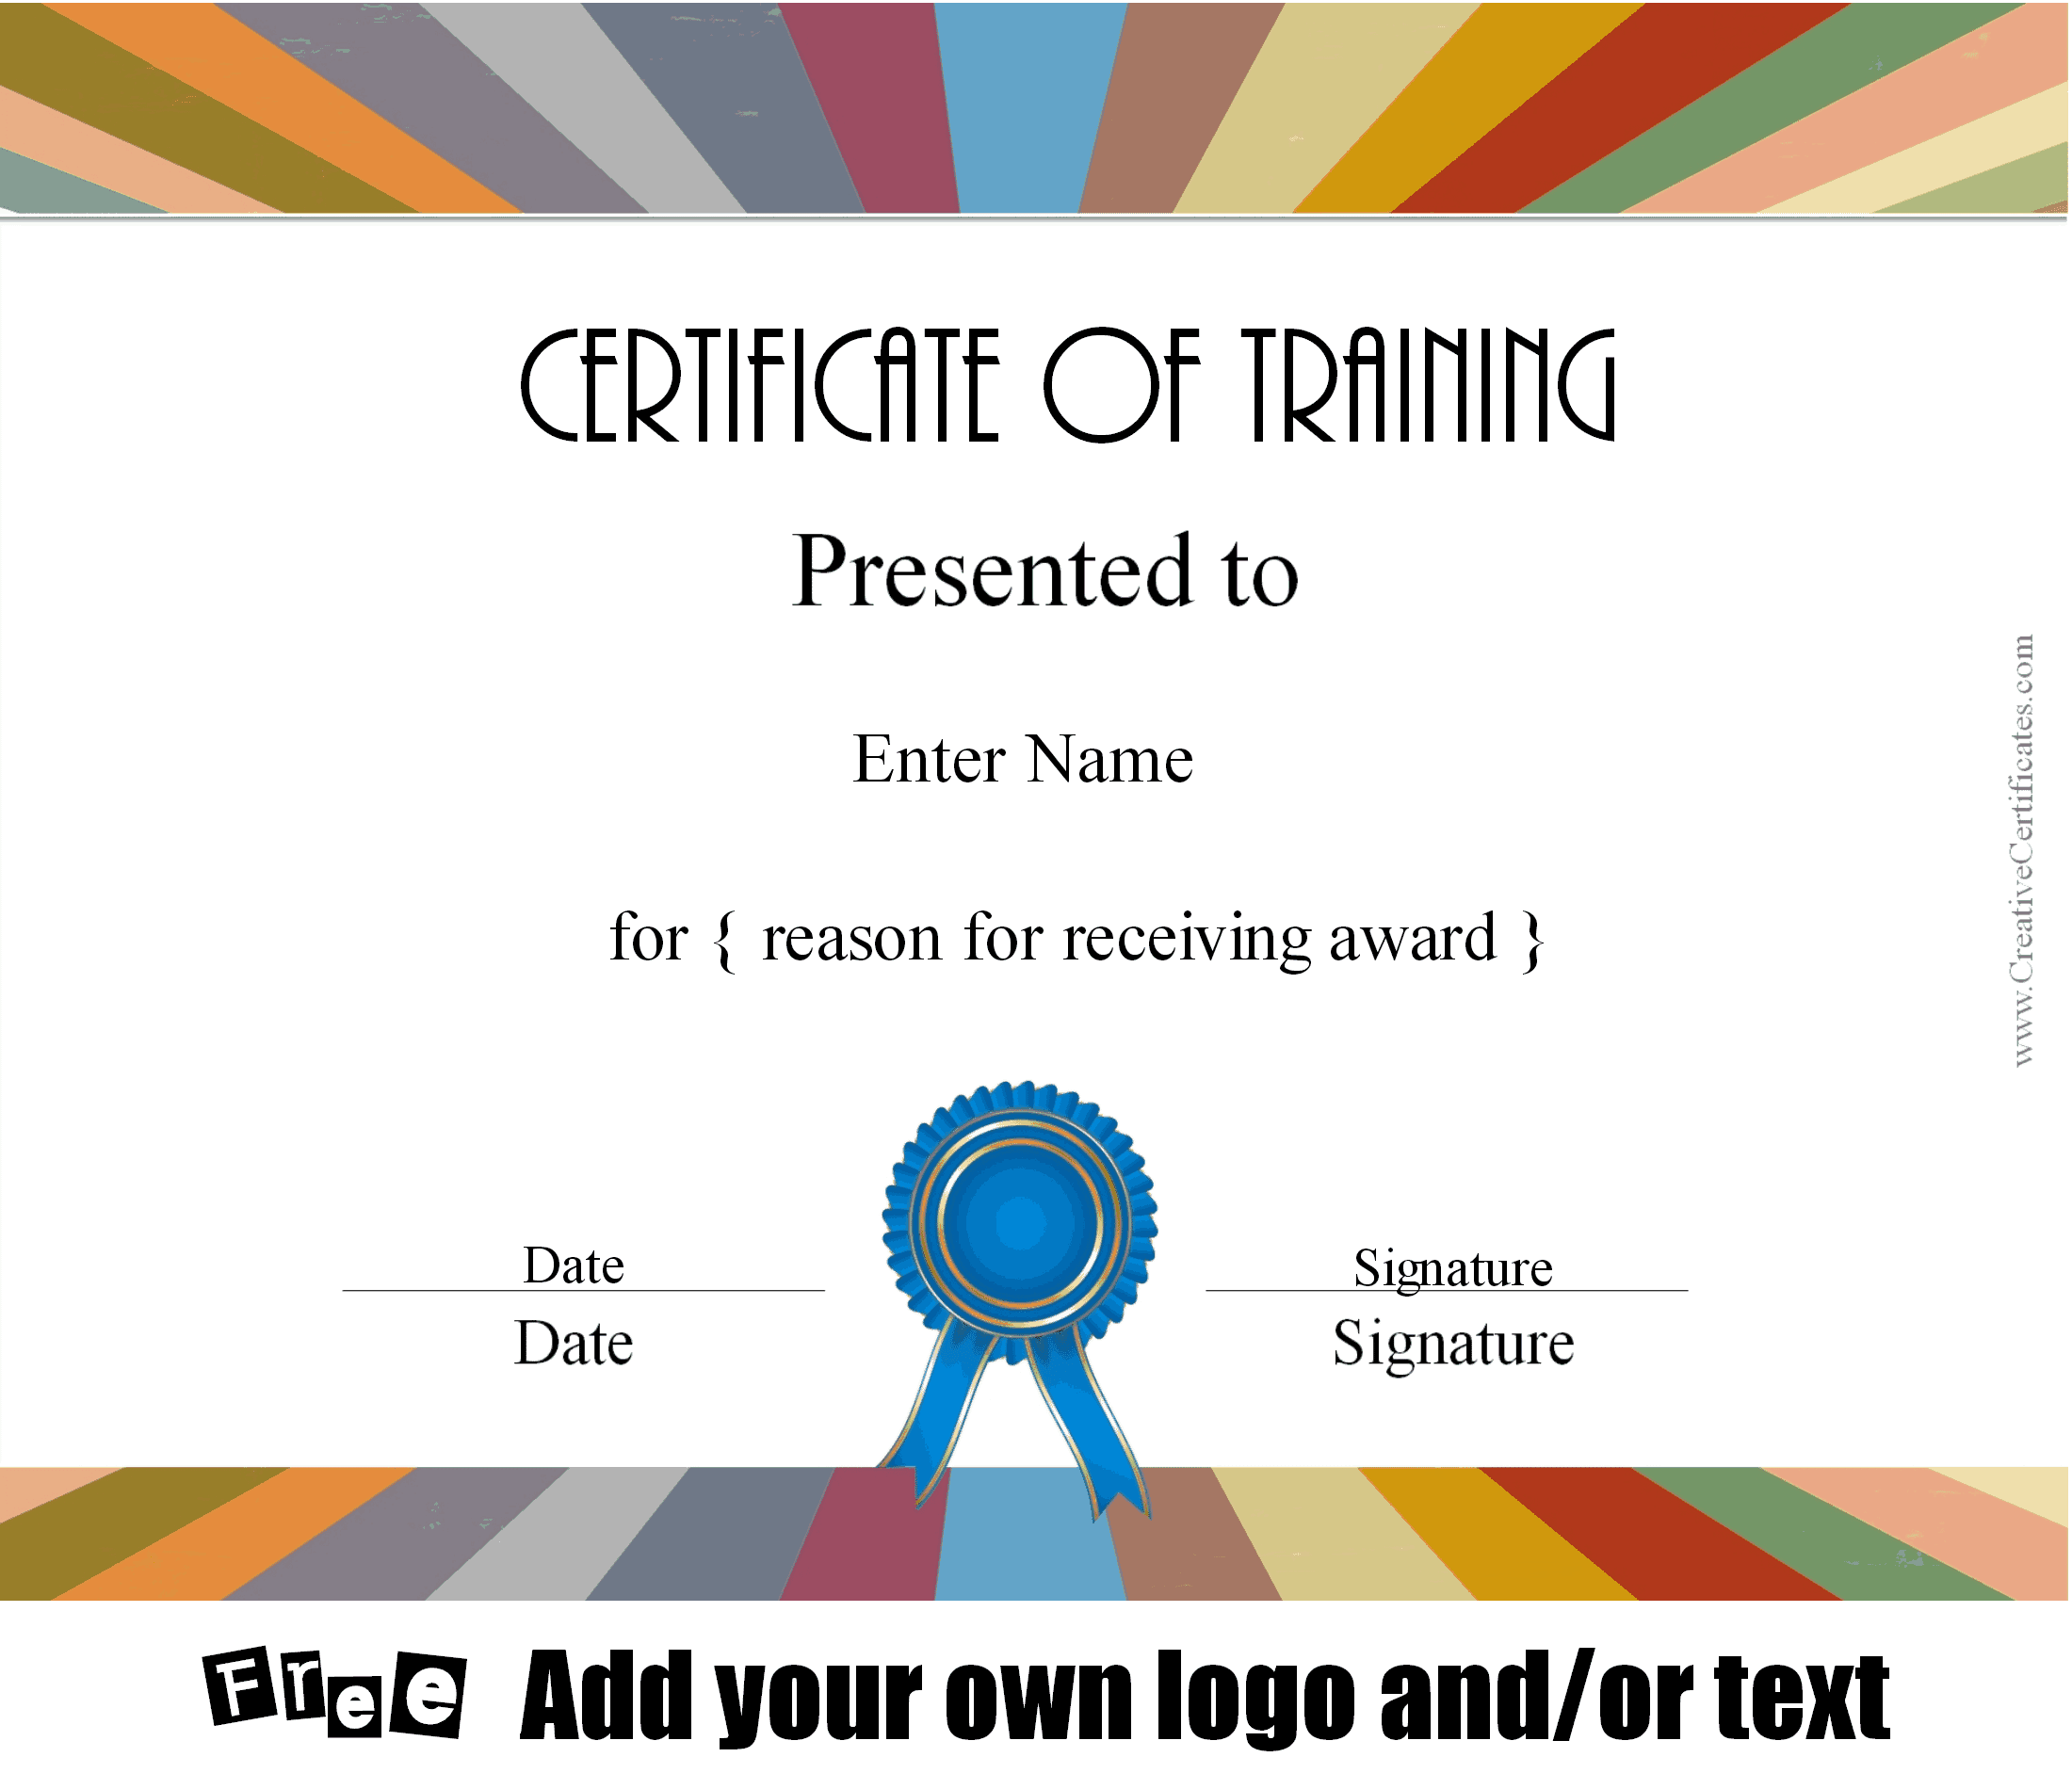 Free certificate of training template customizable diploma for training course yadclub Image collections